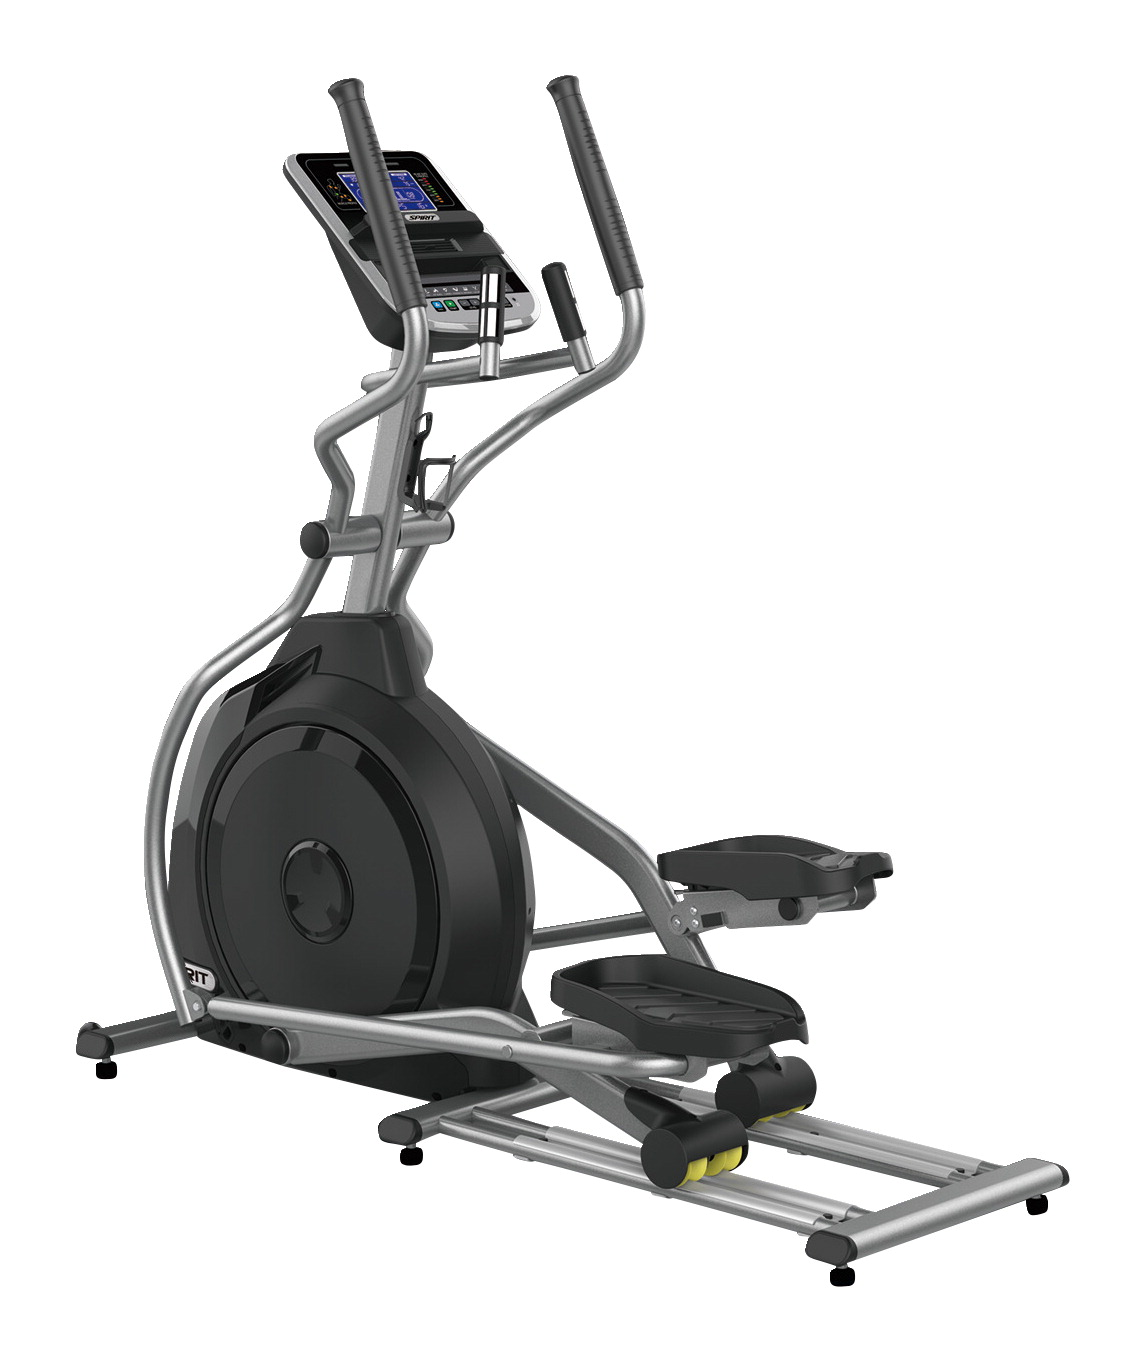 Spirit XE795 Elliptical, 70 x 22 x 68 Inches